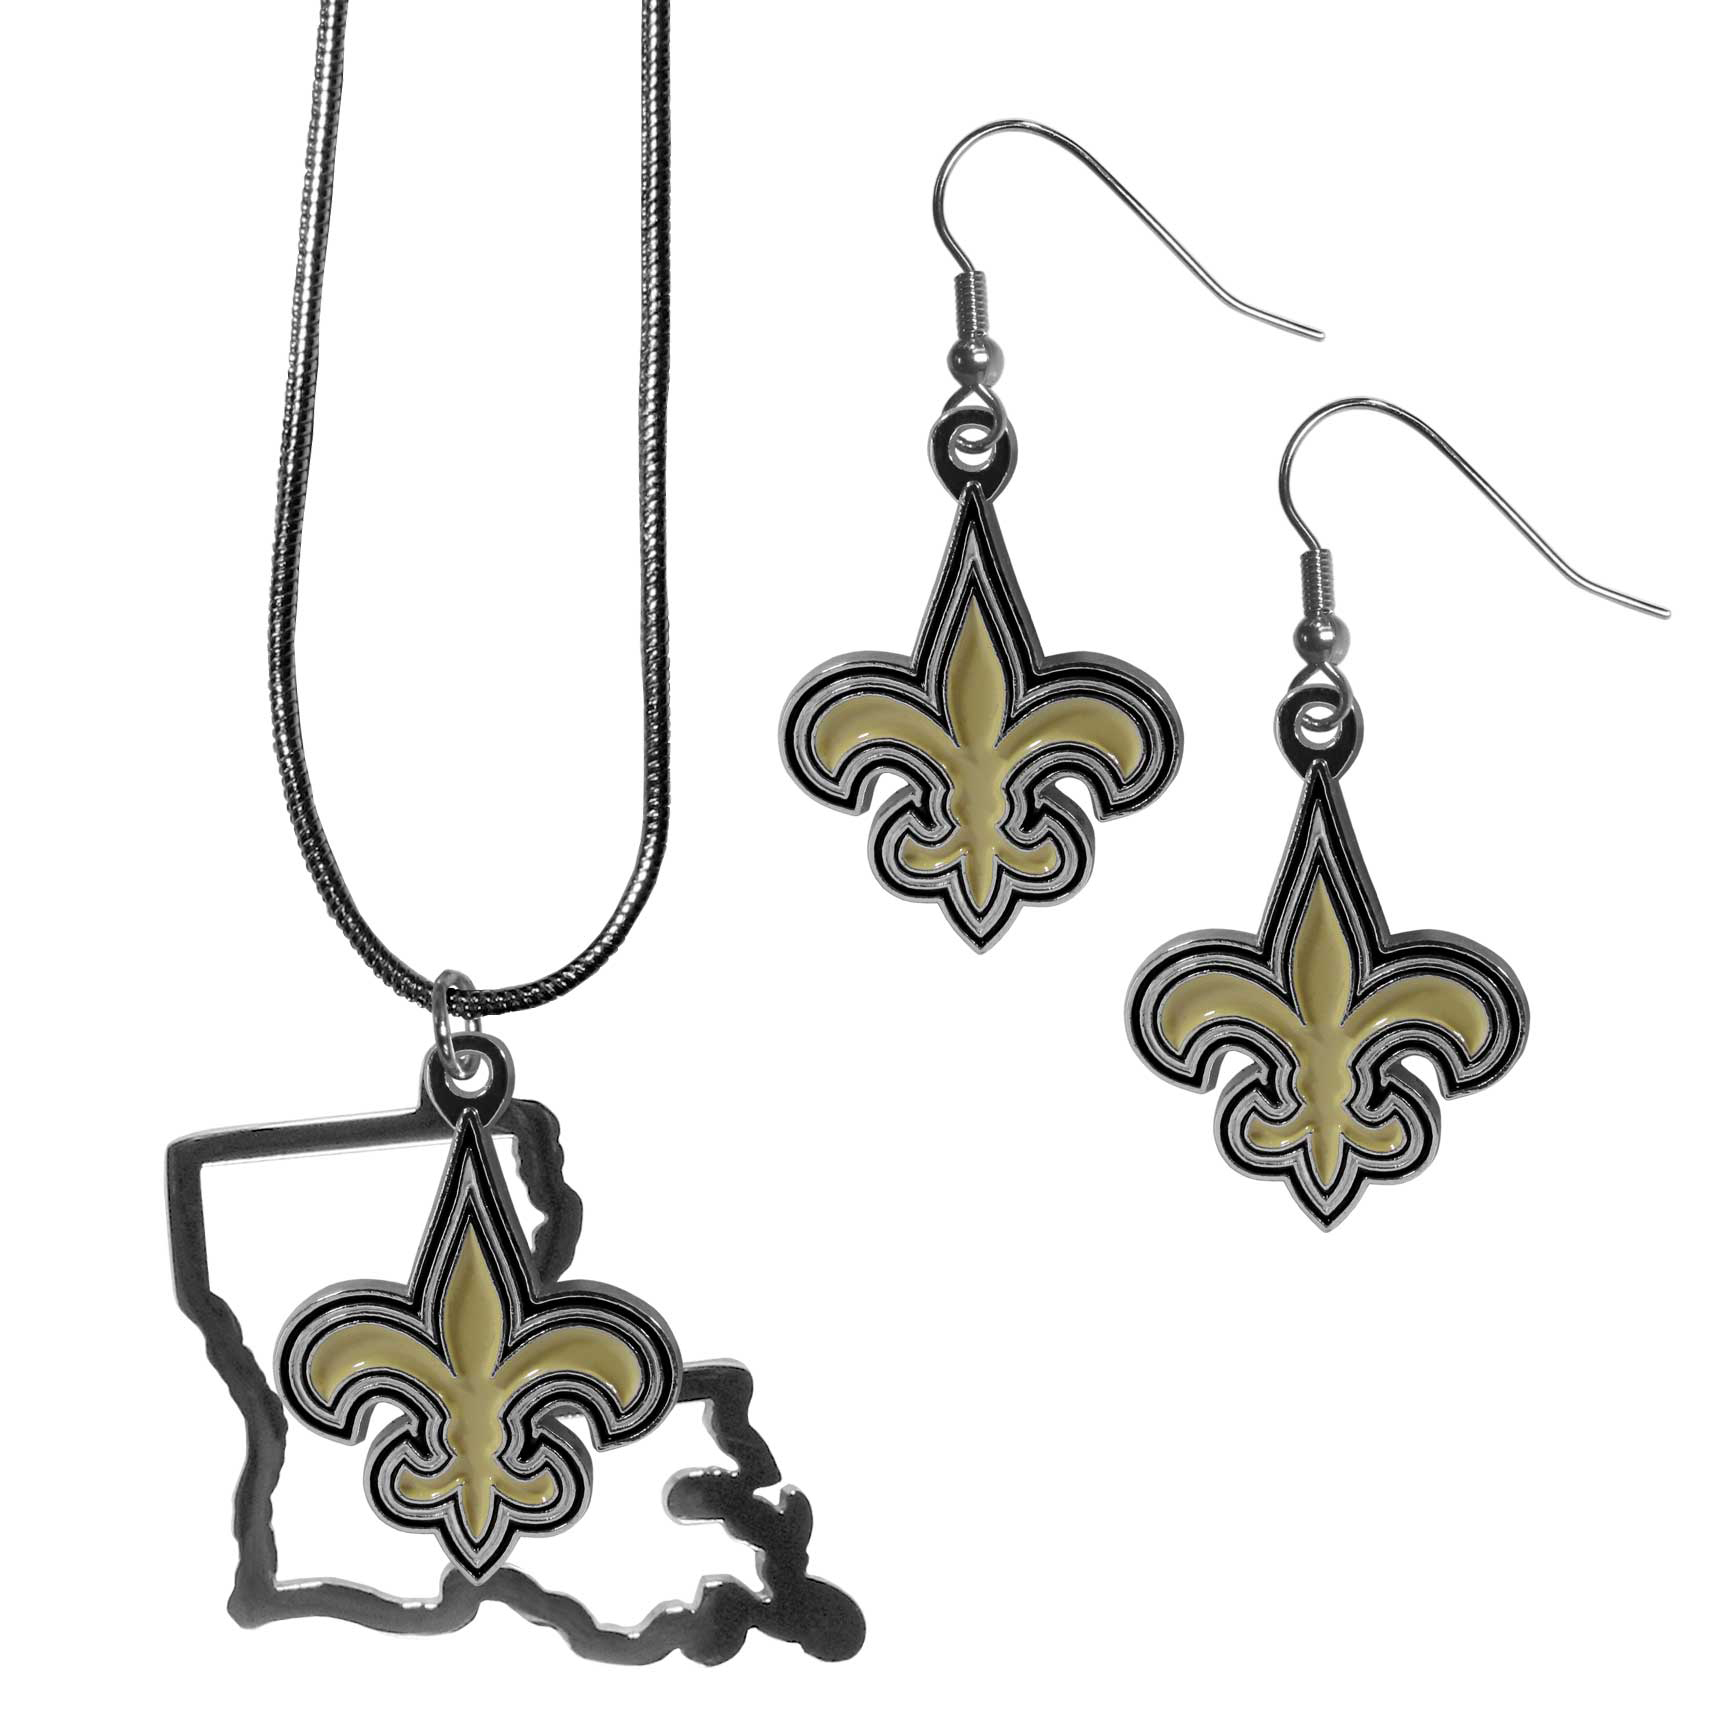 New Orleans Saints Dangle Earrings and State Necklace Set - Get in on the trend! State themes are a trend that just keeps getting more popular and this jewelry set takes the state style and give it a sporty twist with a New Orleans Saints necklace that features an Arizona state outline charm paired with a beautiful team charm and matching team charm dangle earrings. The earrings feature hypoallergenic fishhook posts that are nickel free.